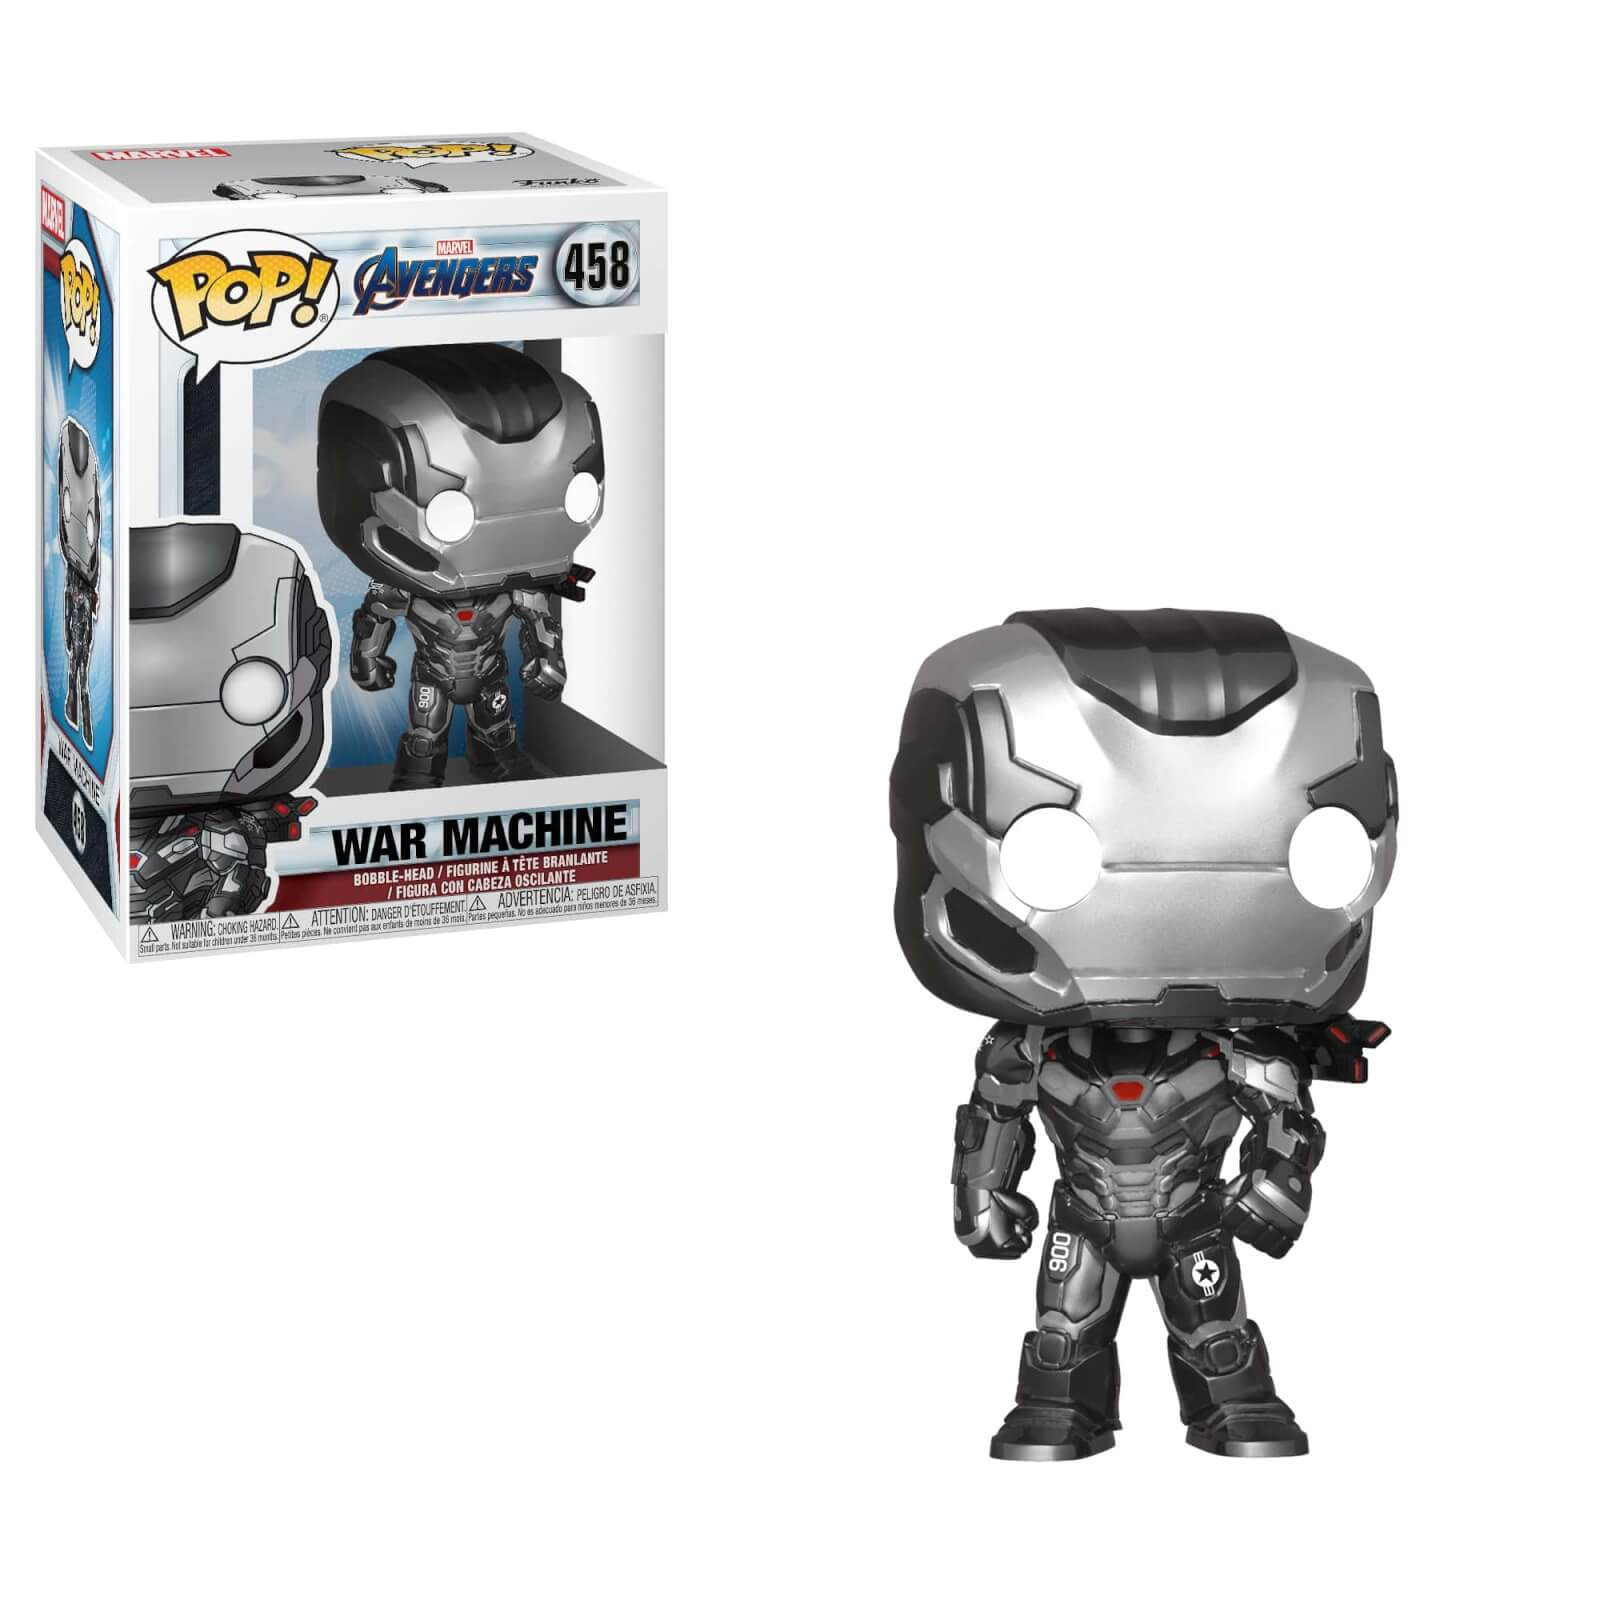 Avengers War Machine Funko POP Bobble-Head Figur